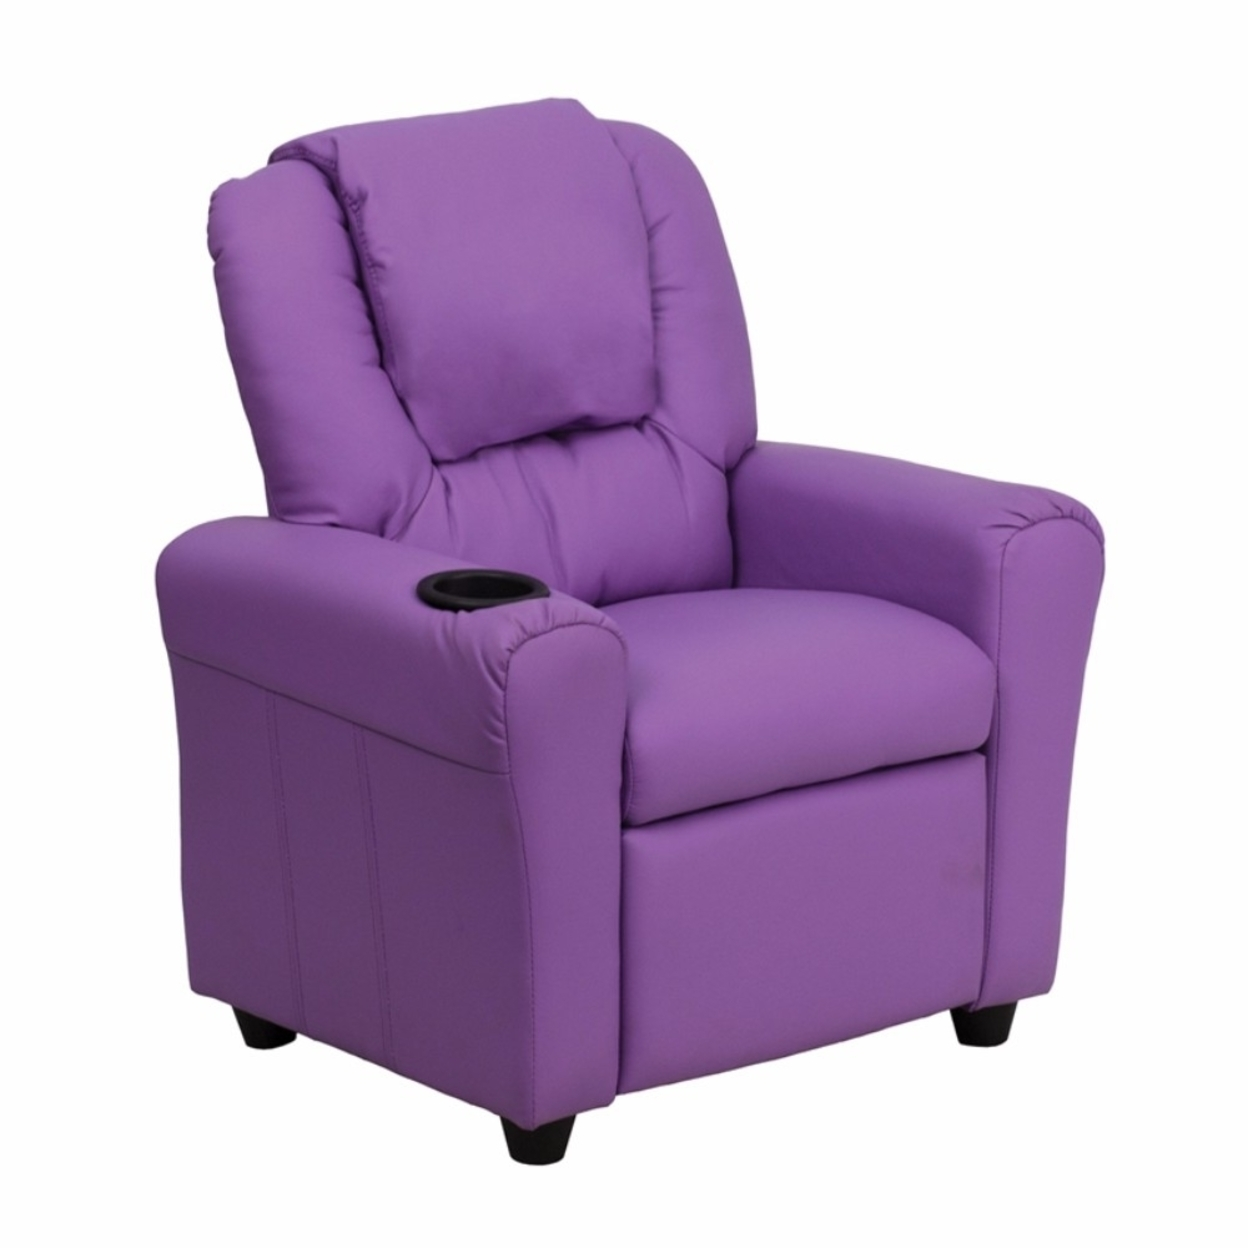 Flash Furniture Contemporary Lavender Vinyl Kids Recliner with Cup Holder and Headrest [863-Dg-Ult-Kid-Lav-Gg] 59e46028e2246142ce45d2bd